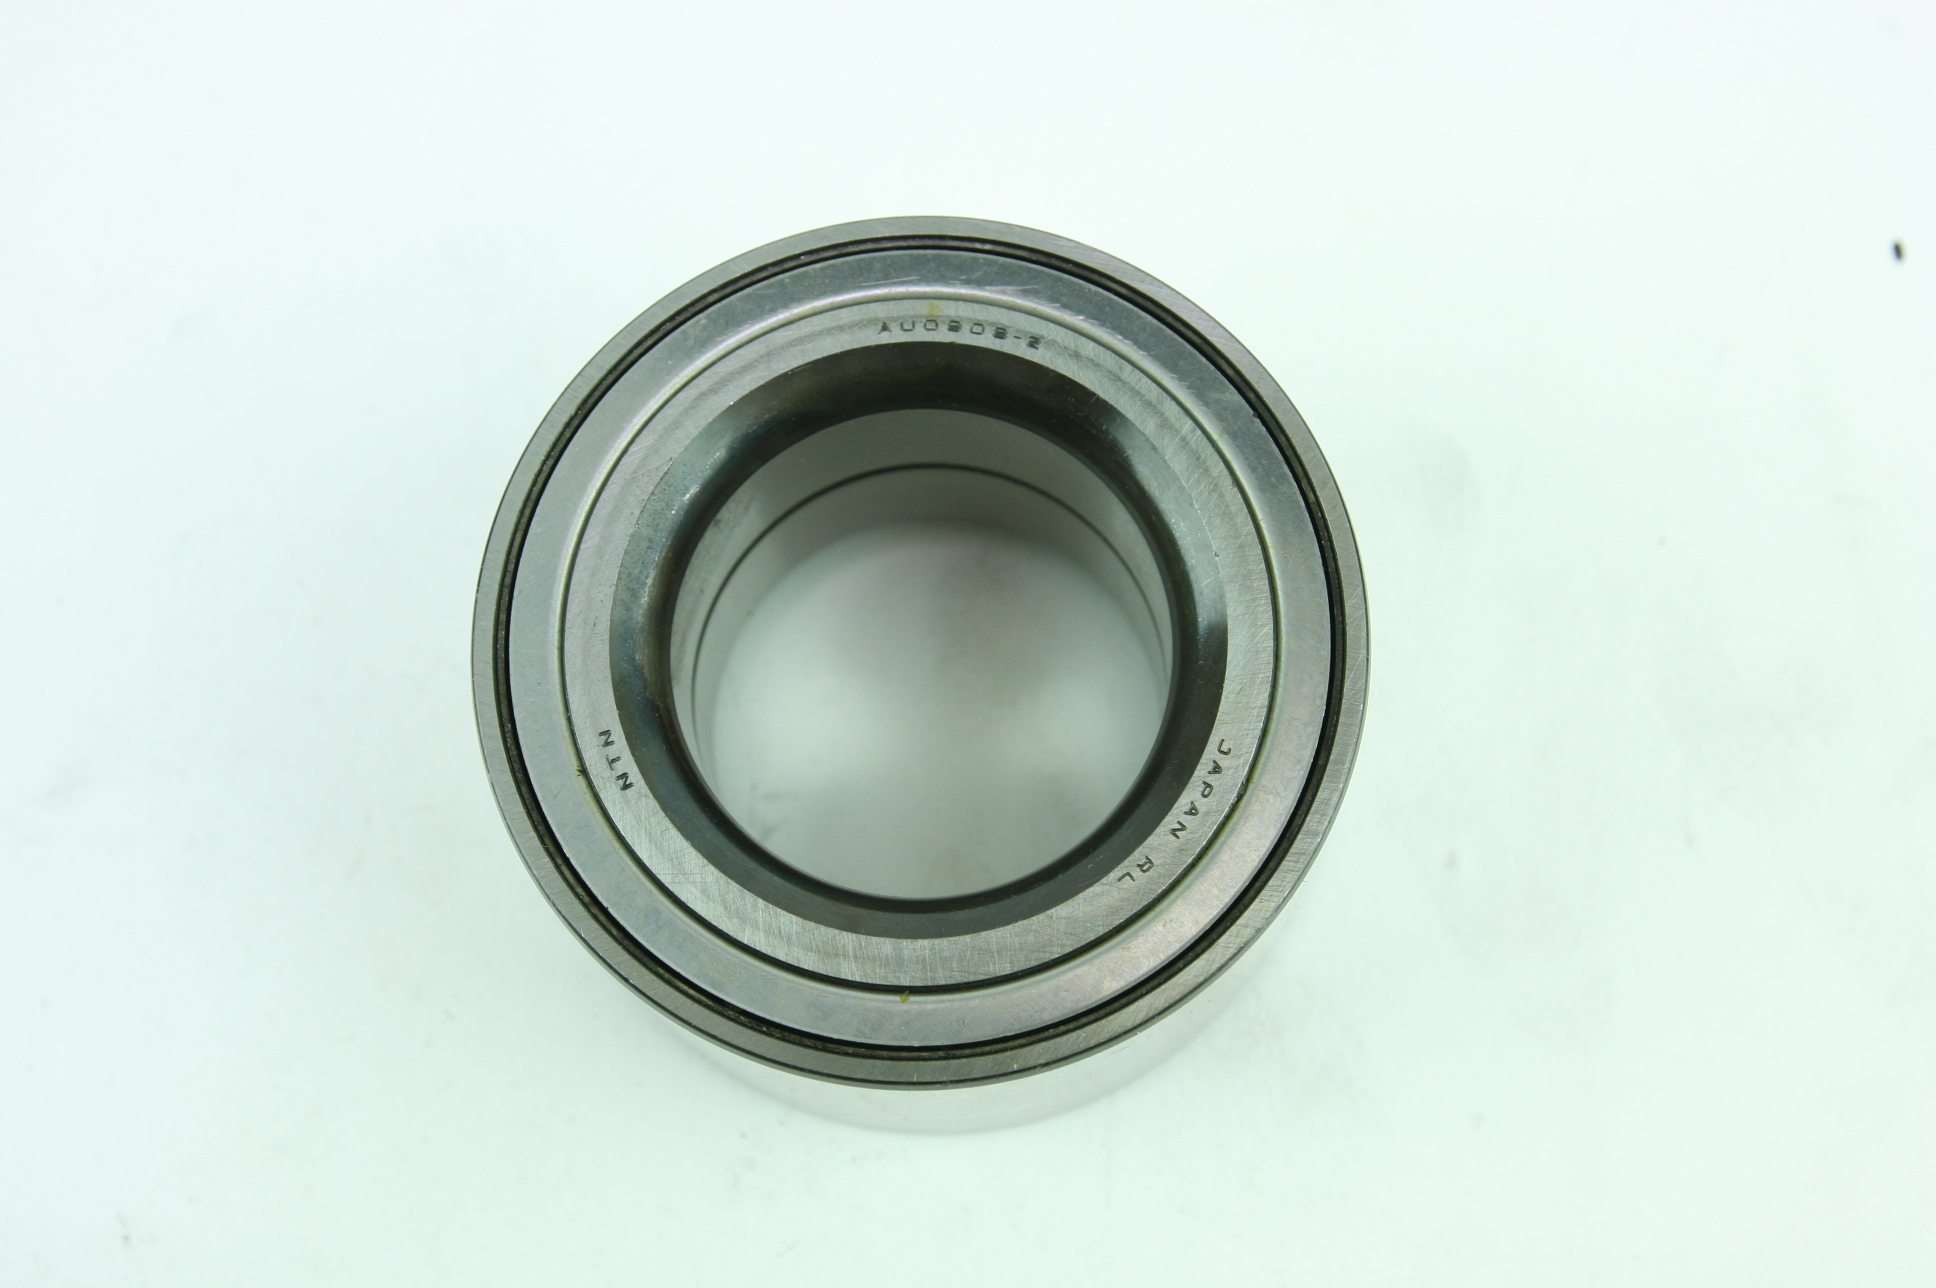 * New Genuine OEM Nissan 402102Y000 Front Wheel Bearing Fast Free Shipping - image 3